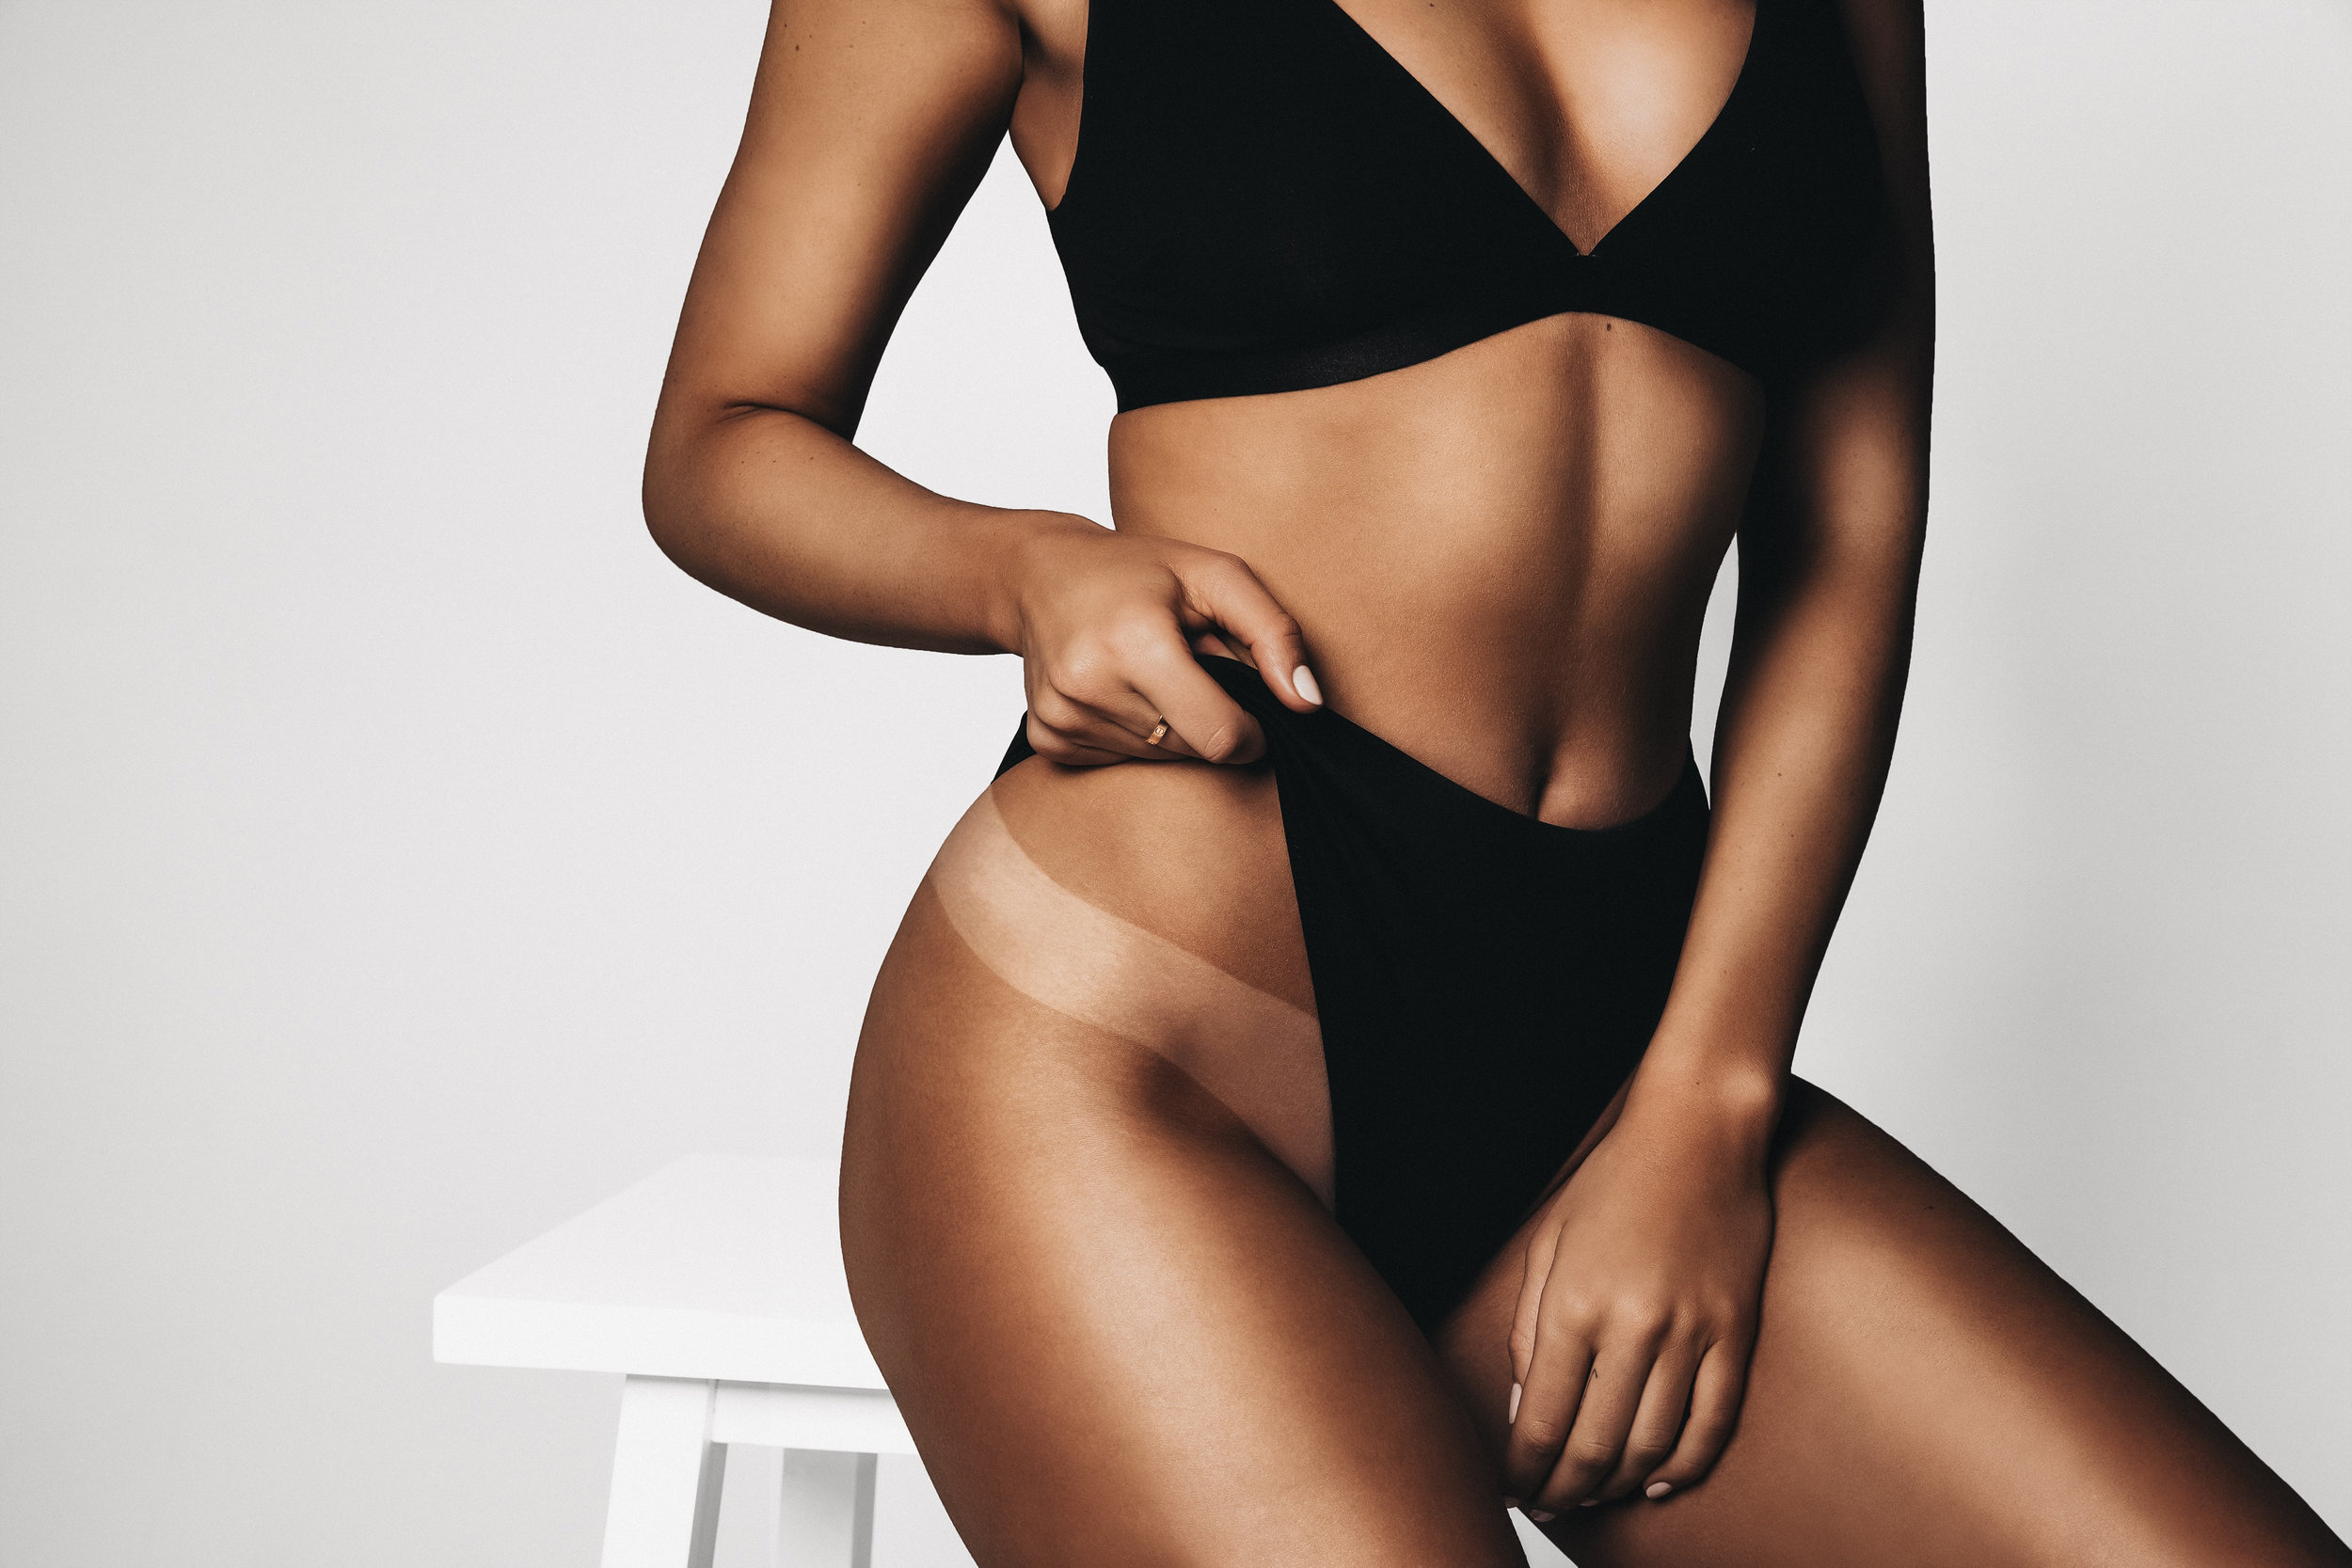 tuscan tan spray tan | beauty company moonee ponds| spray tan near me